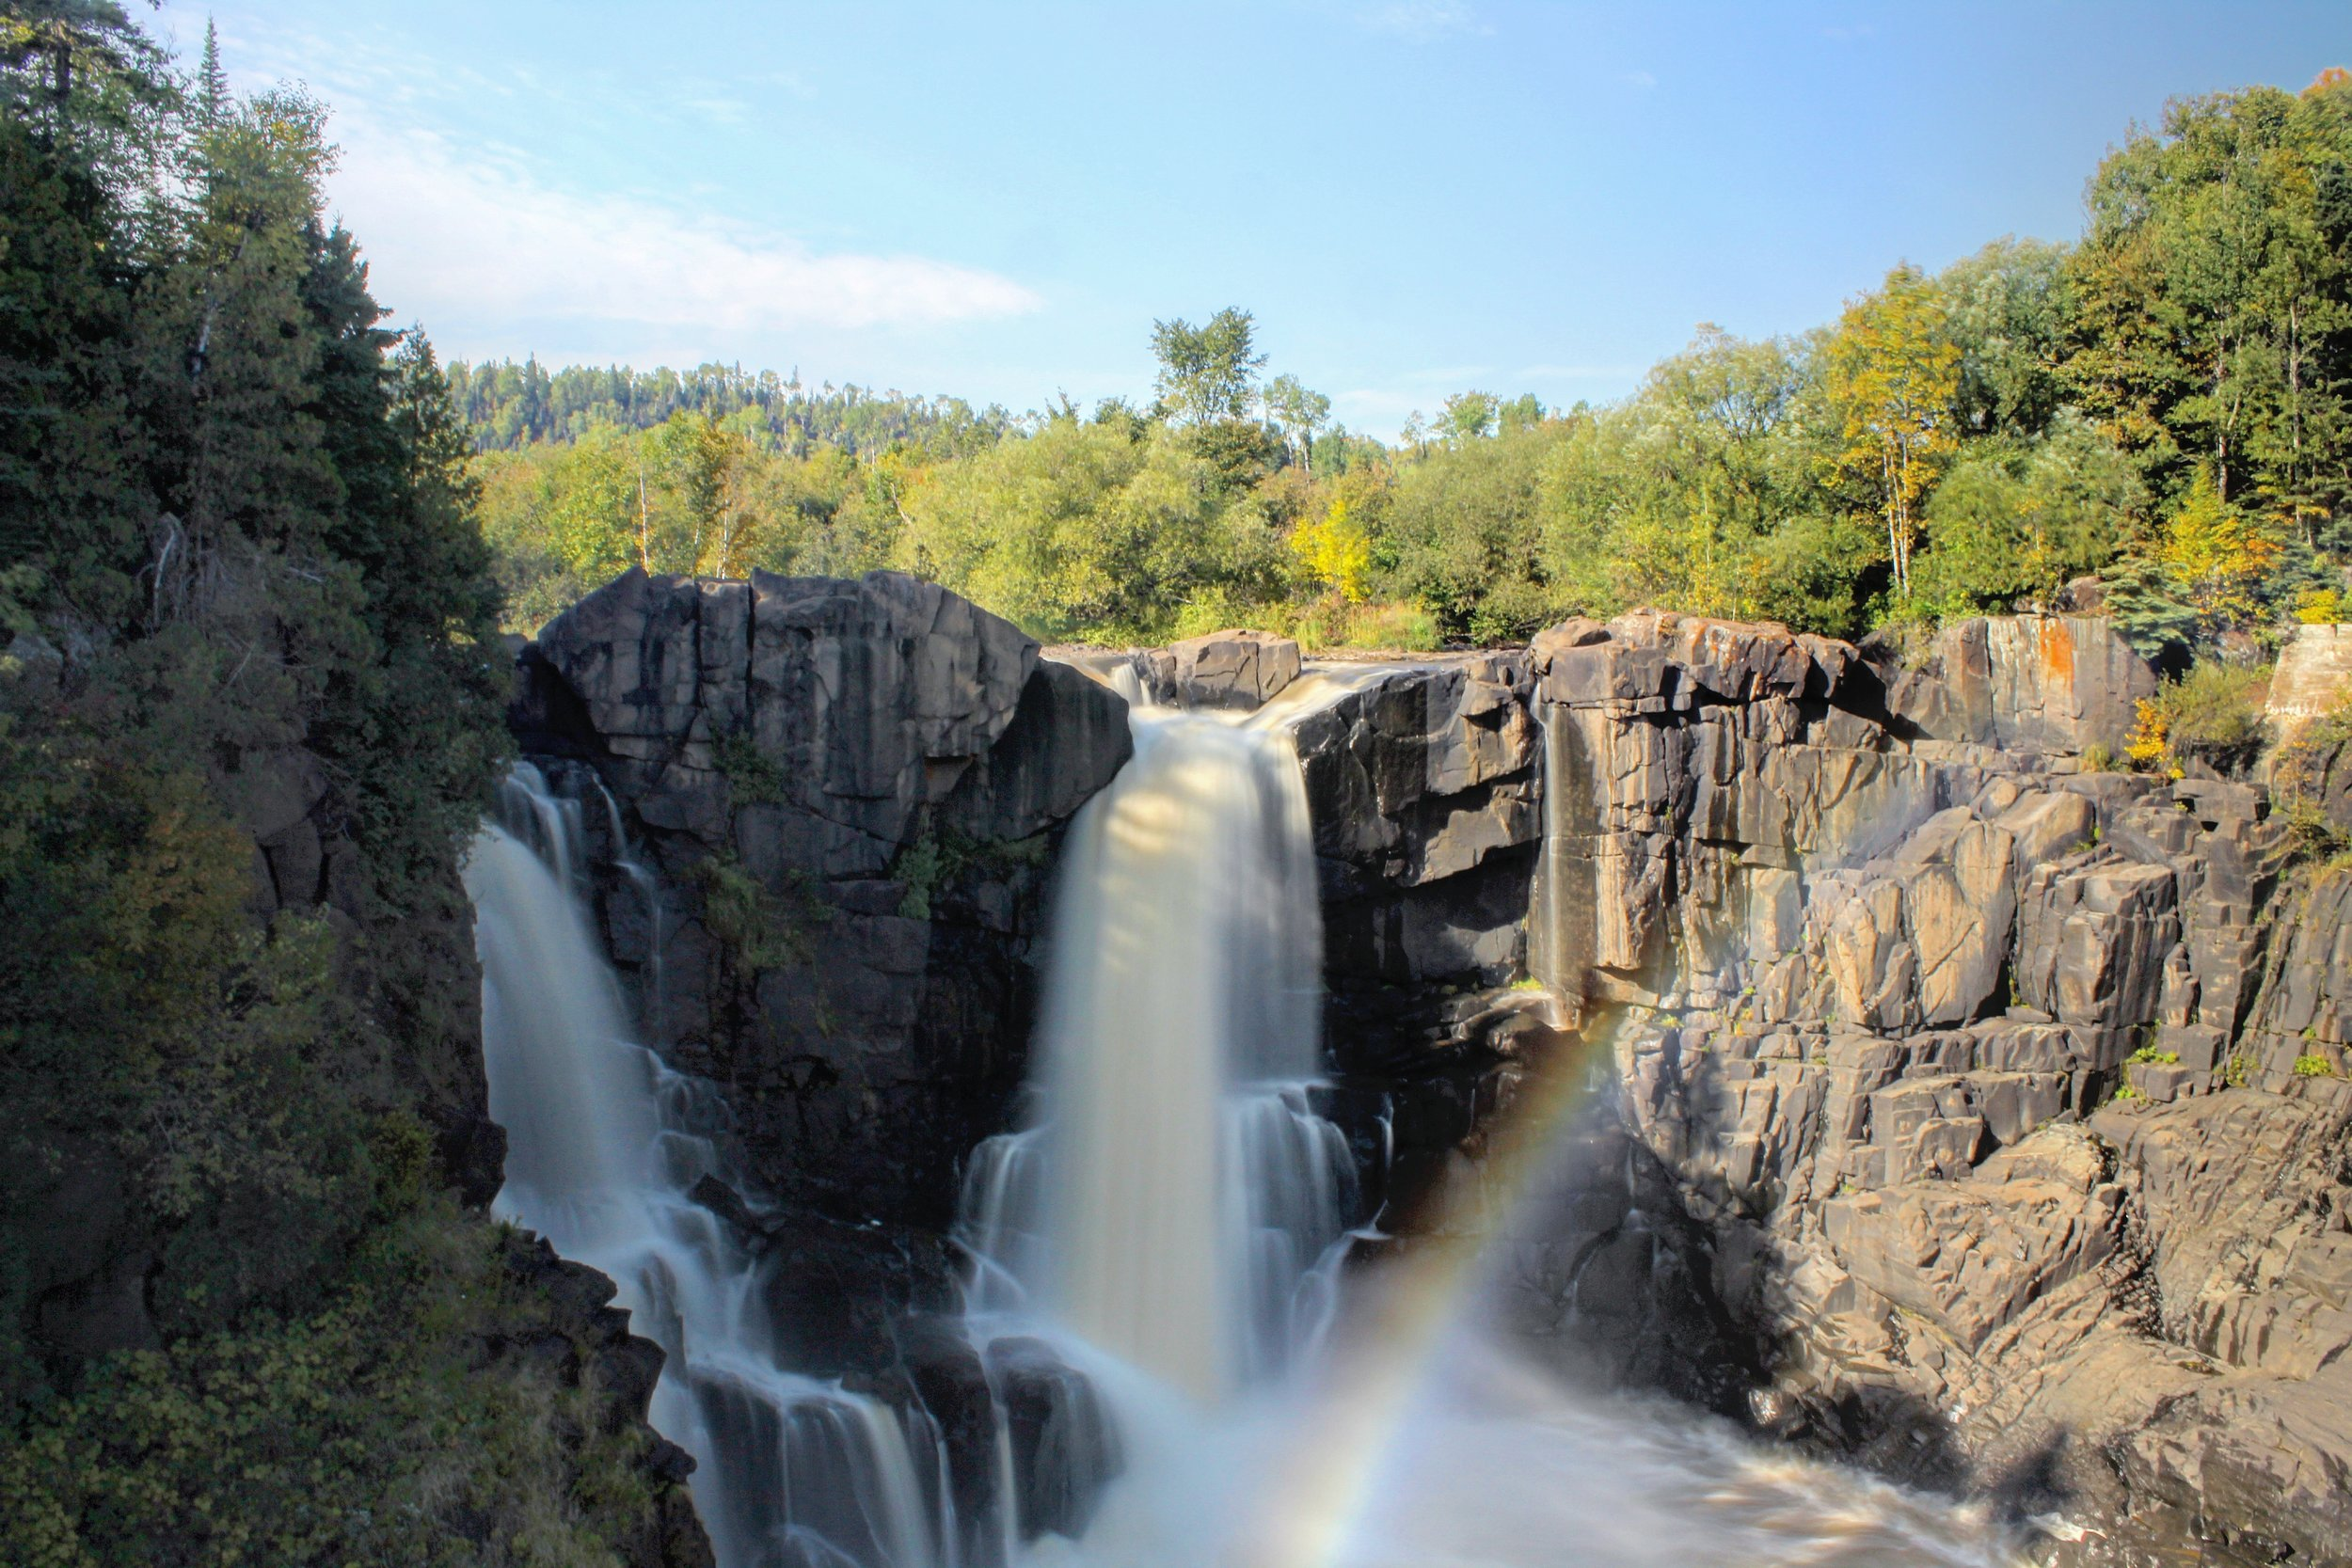 High Falls on the Pigeon River, Canada is on the right.